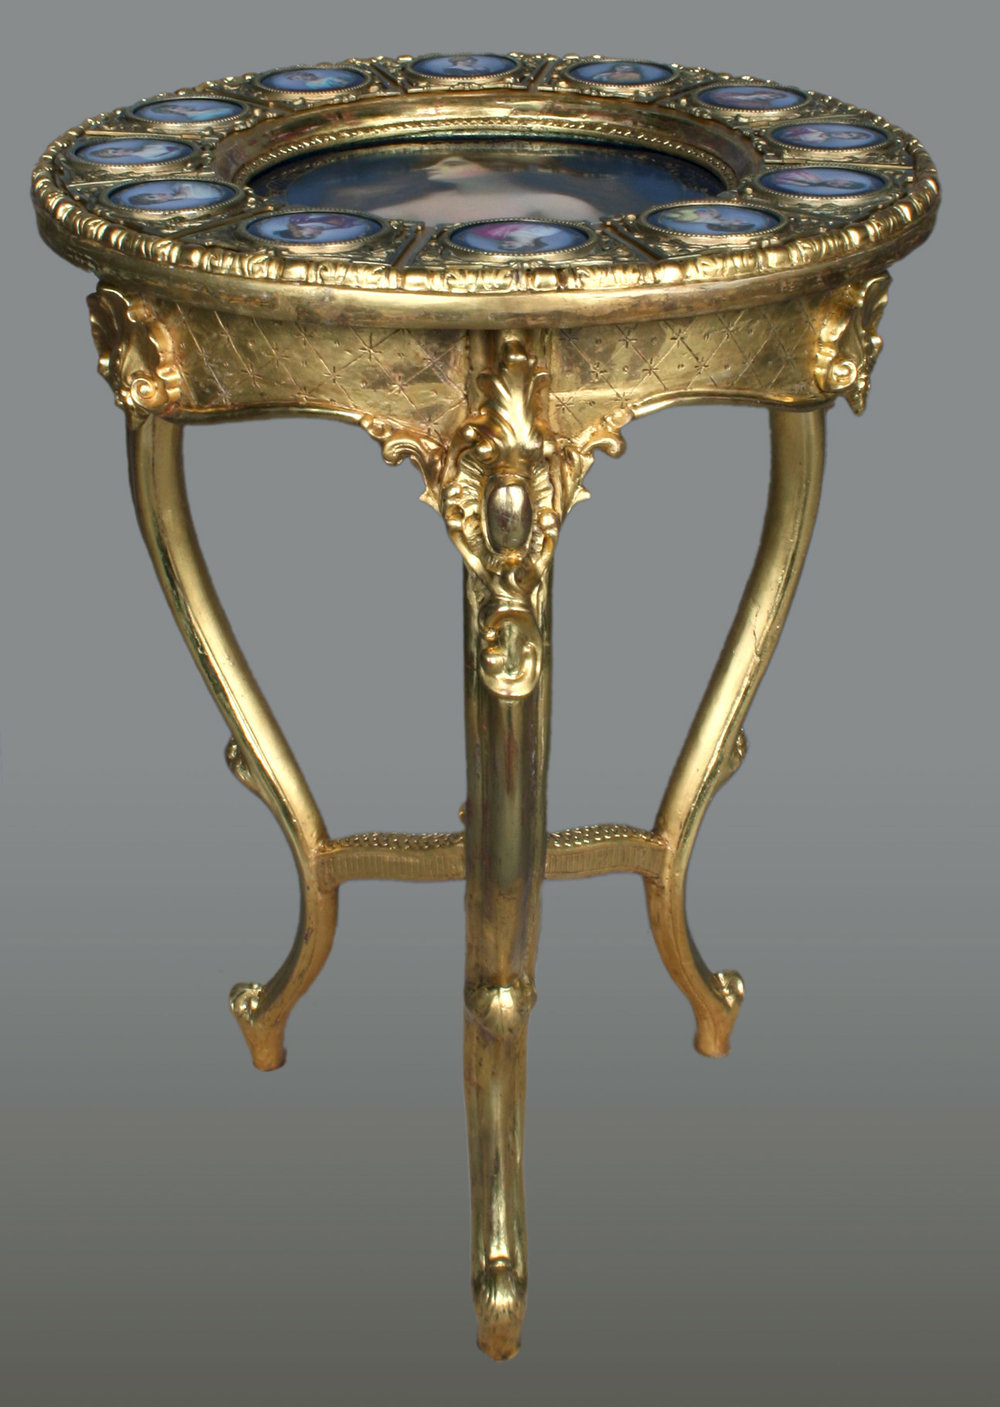 restored-giltwood-table.jpg